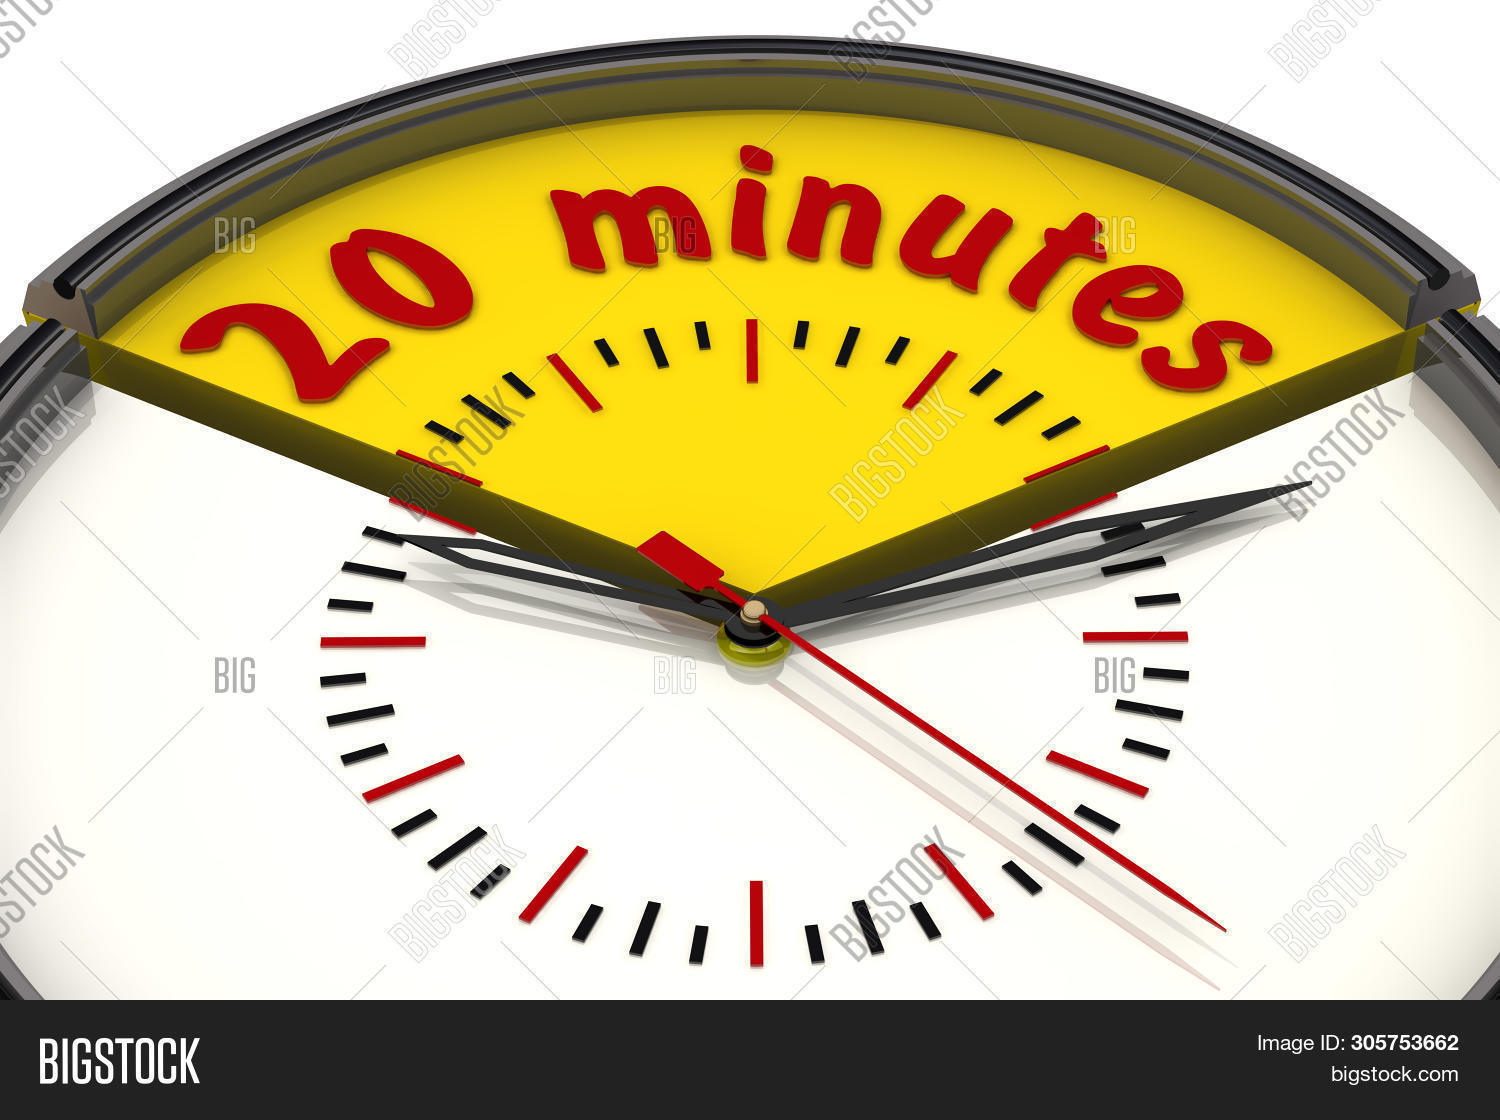 Twenty Minutes On The Clock. The Time Interval Of Twenty Minutes On The Analog Clock. Isolated. 3d I